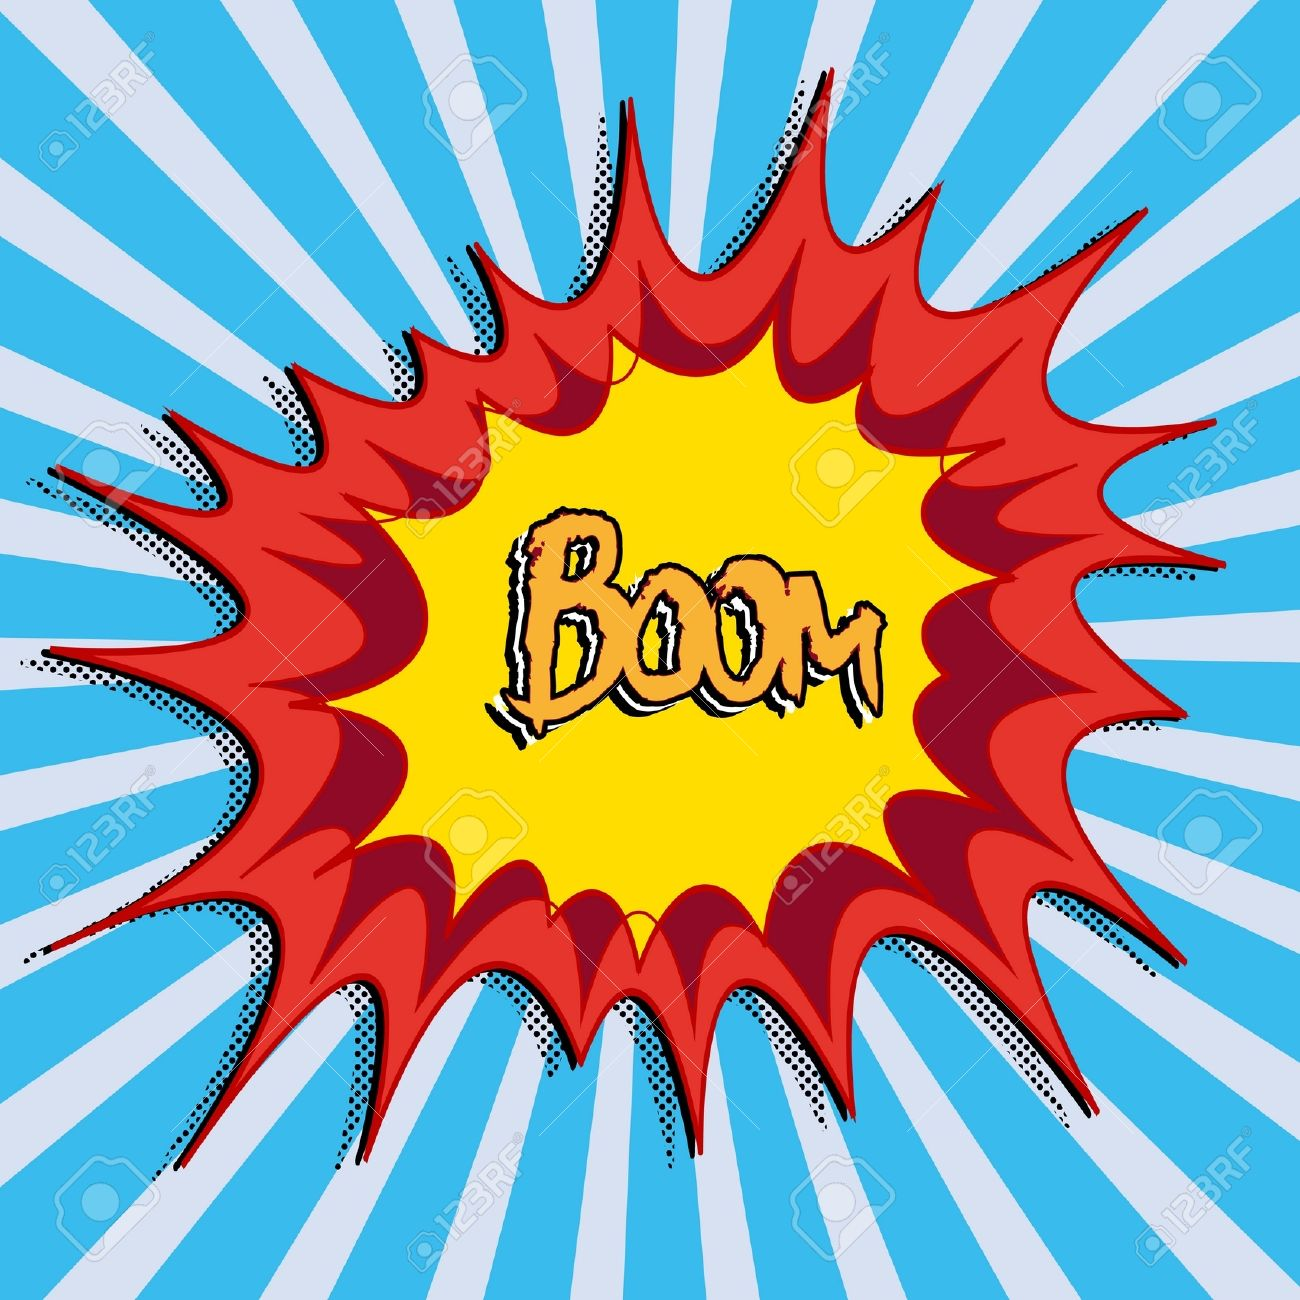 Comic Book Explosion Art Royalty Free Cliparts, Vectors, And Stock.